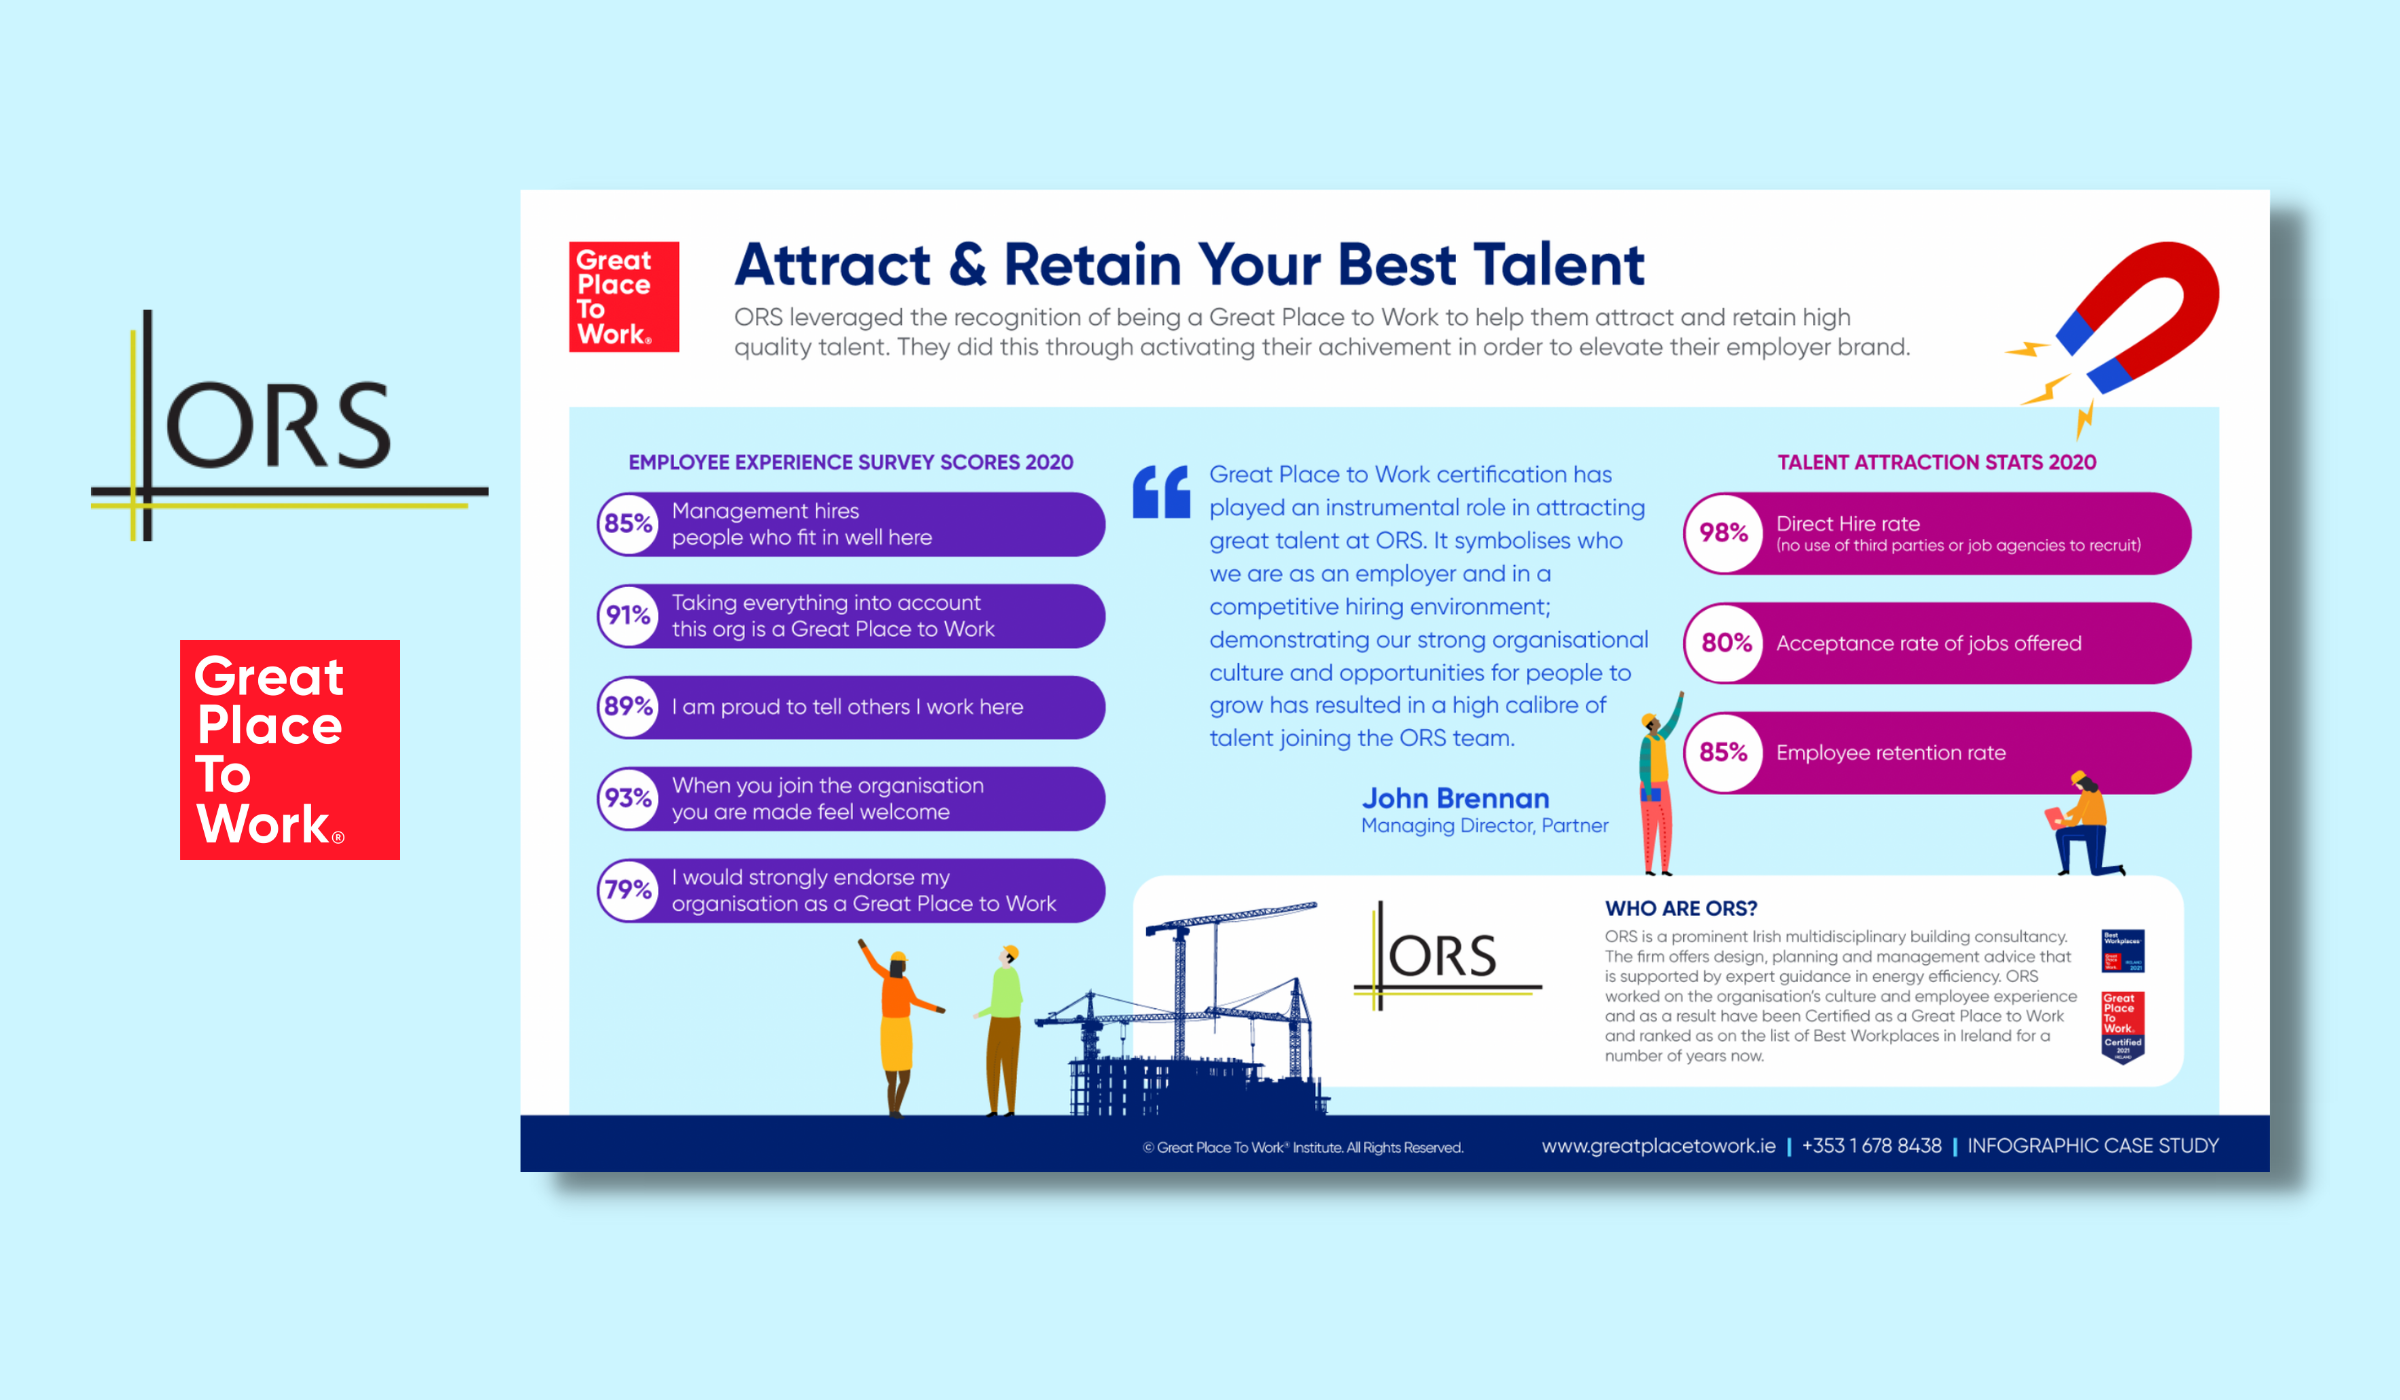 How ORS Attracts and Retains Top Talent